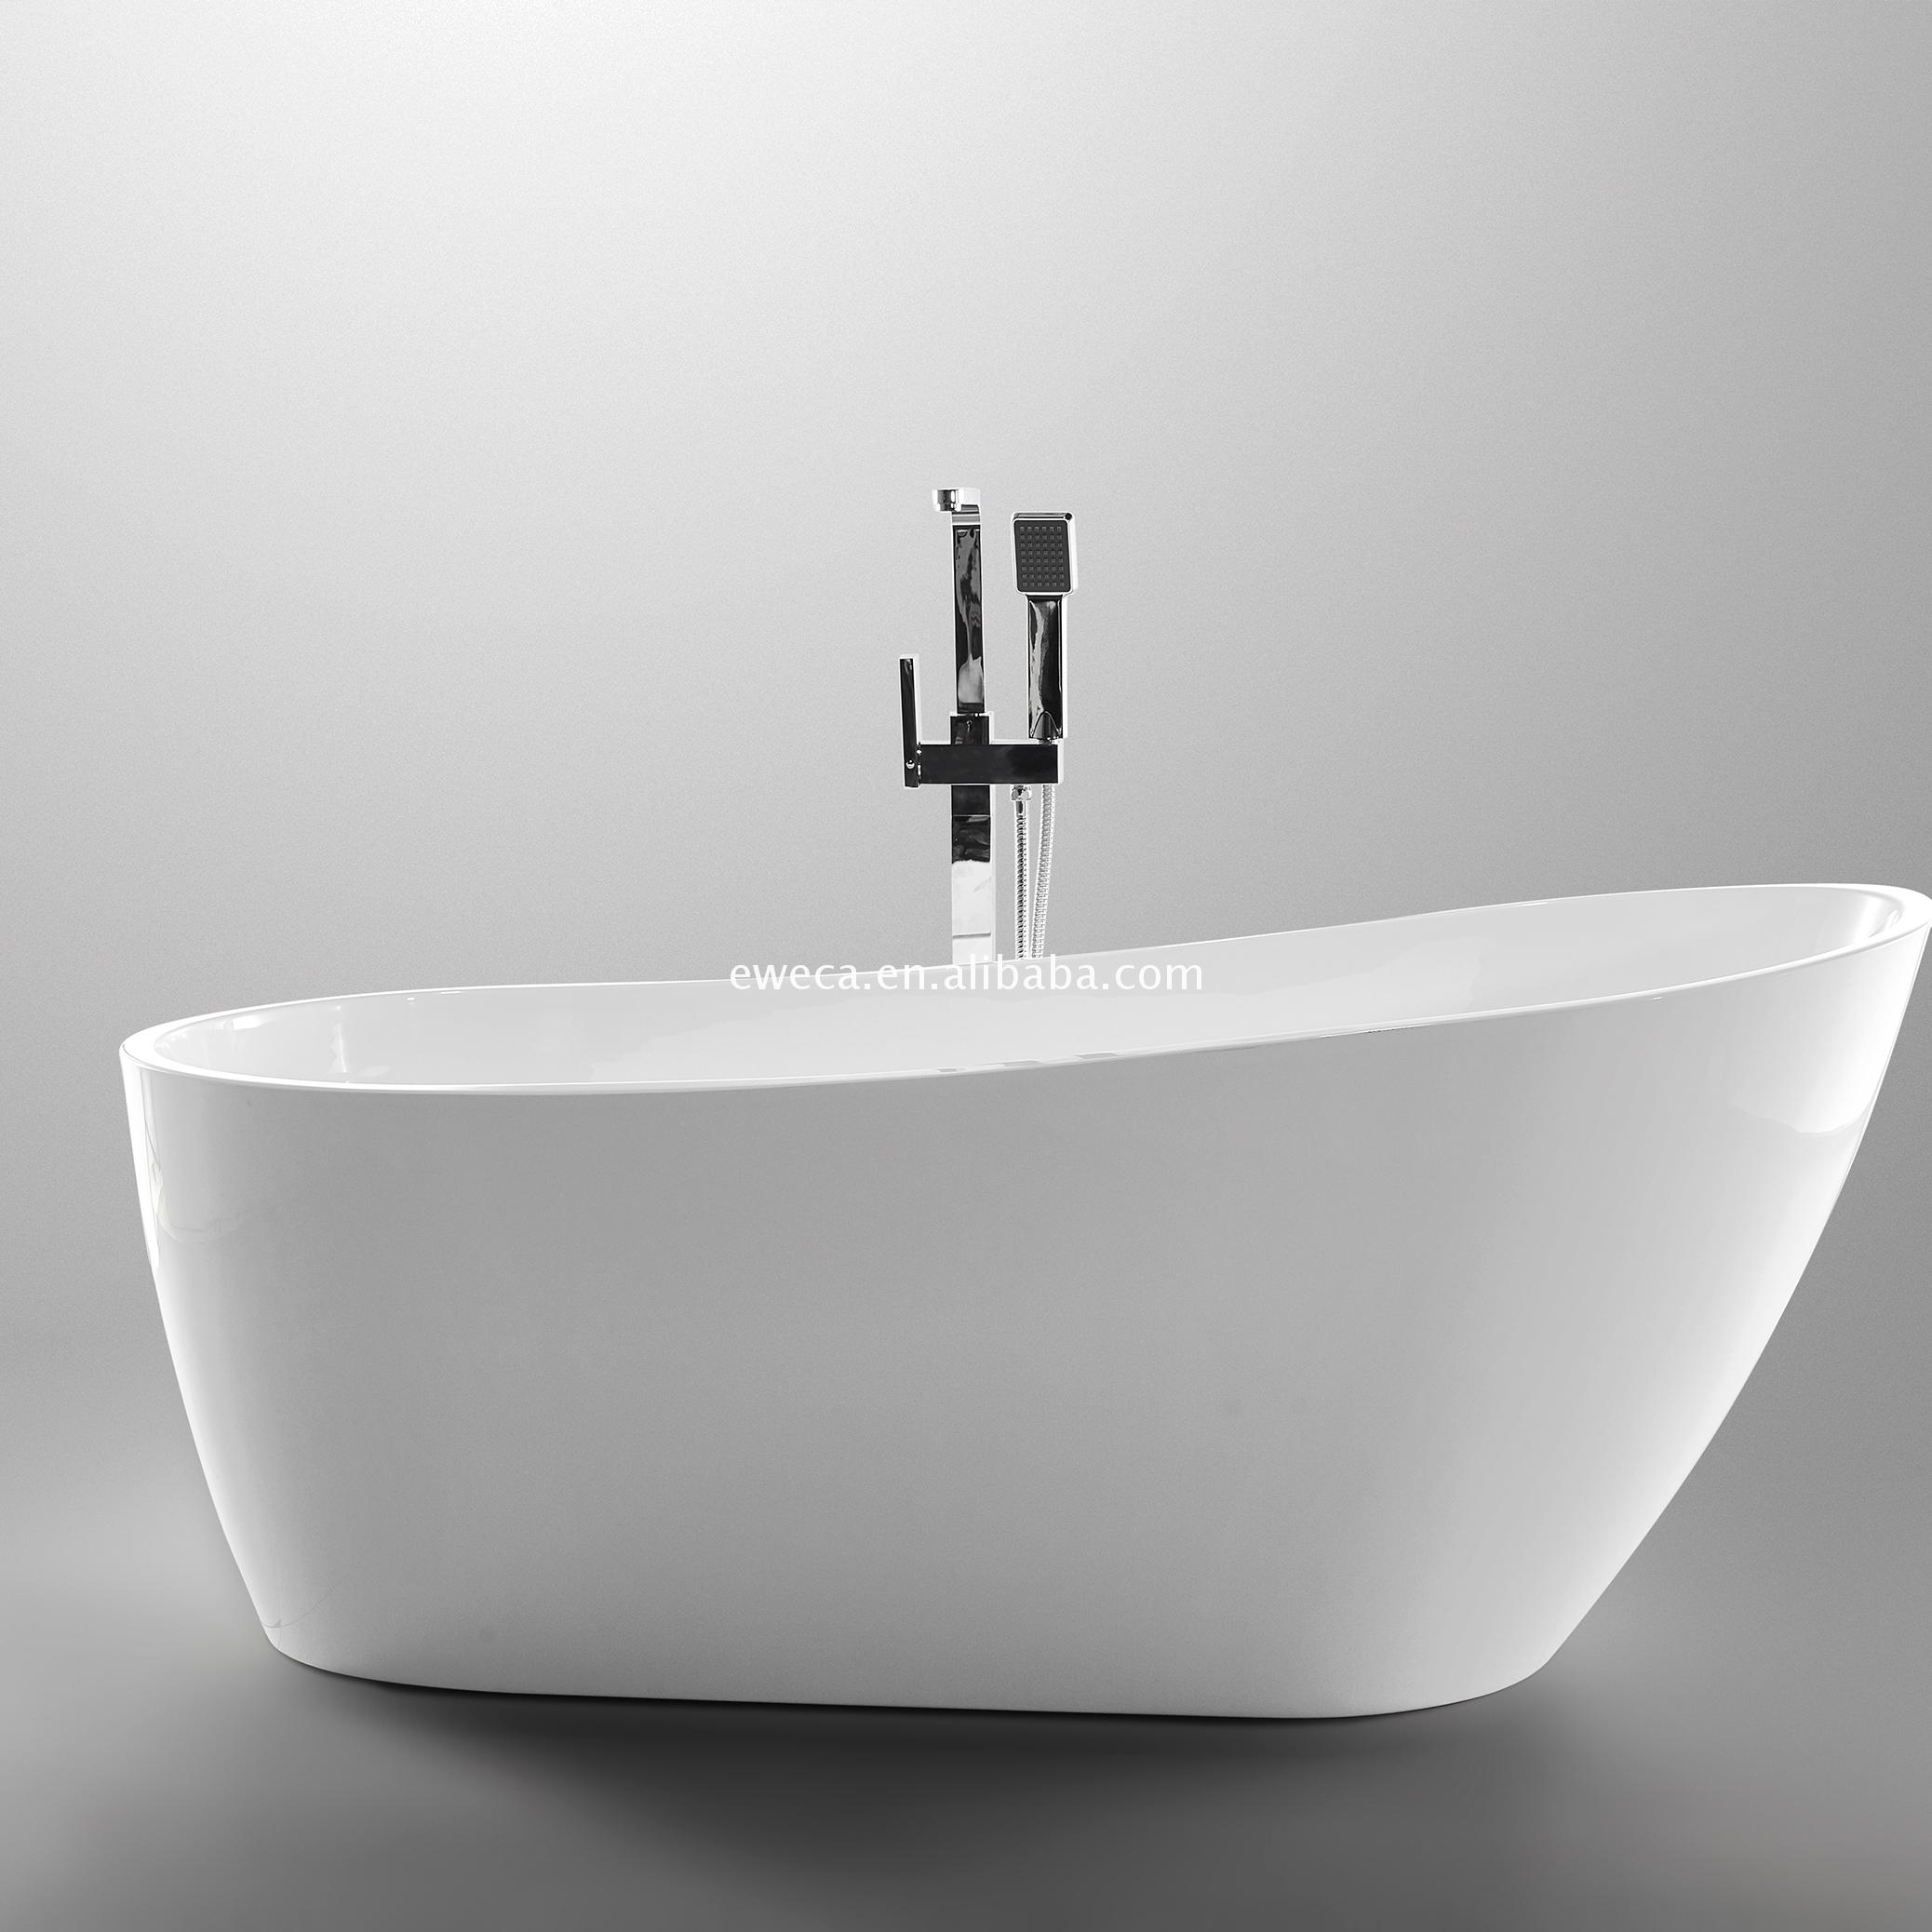 Stand Alone Bath Tubs, Stand Alone Bath Tubs Suppliers and ...